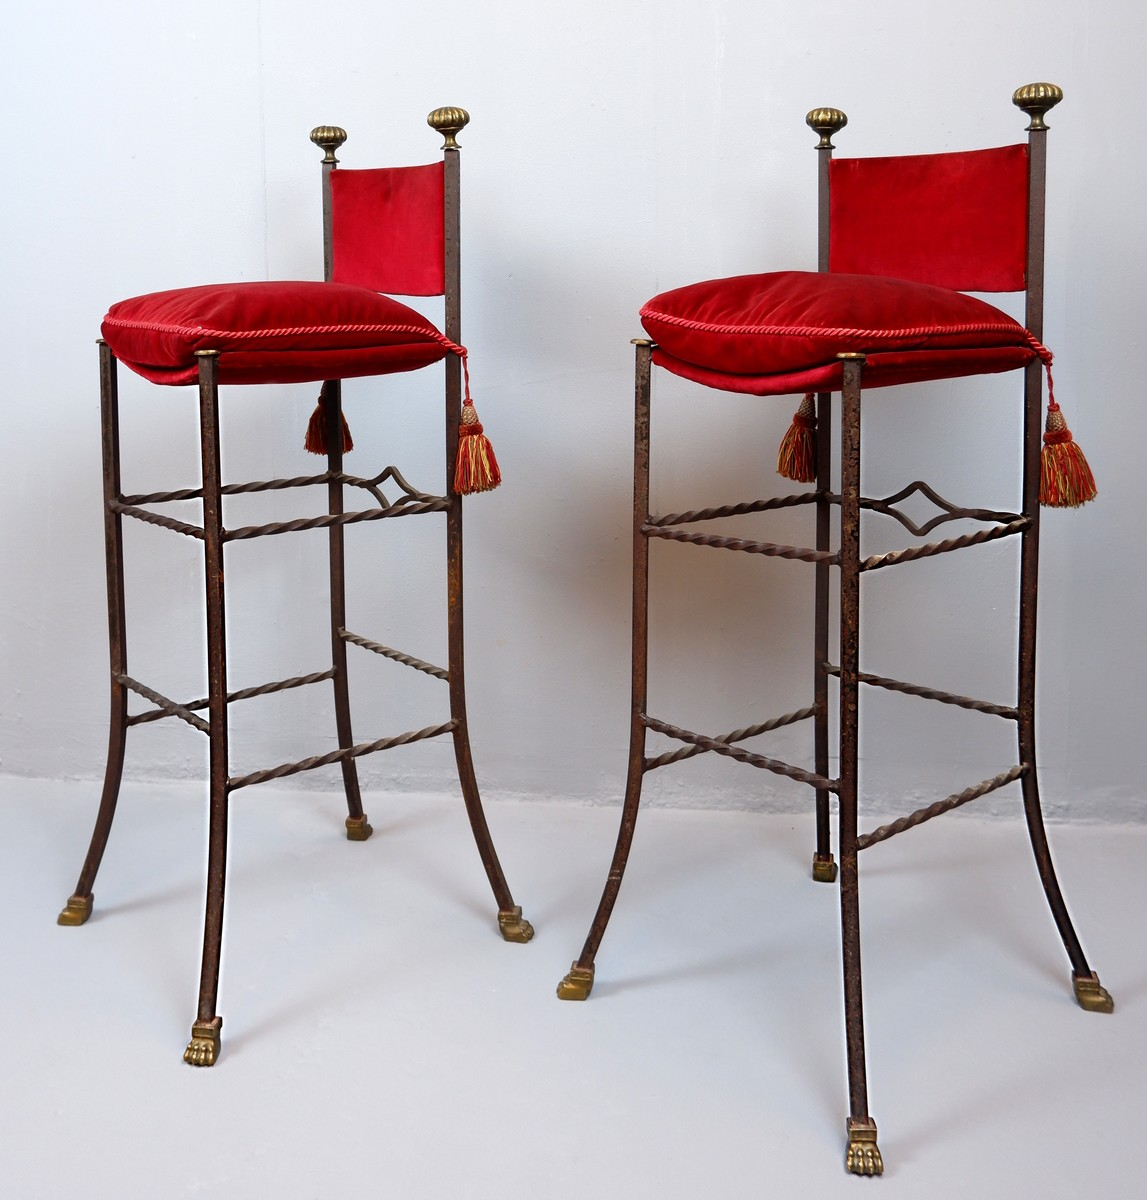 Pair Of Wrought Iron And Red Velvet Bar Stools Via Antica Recent Added Items European Antiques Decorative